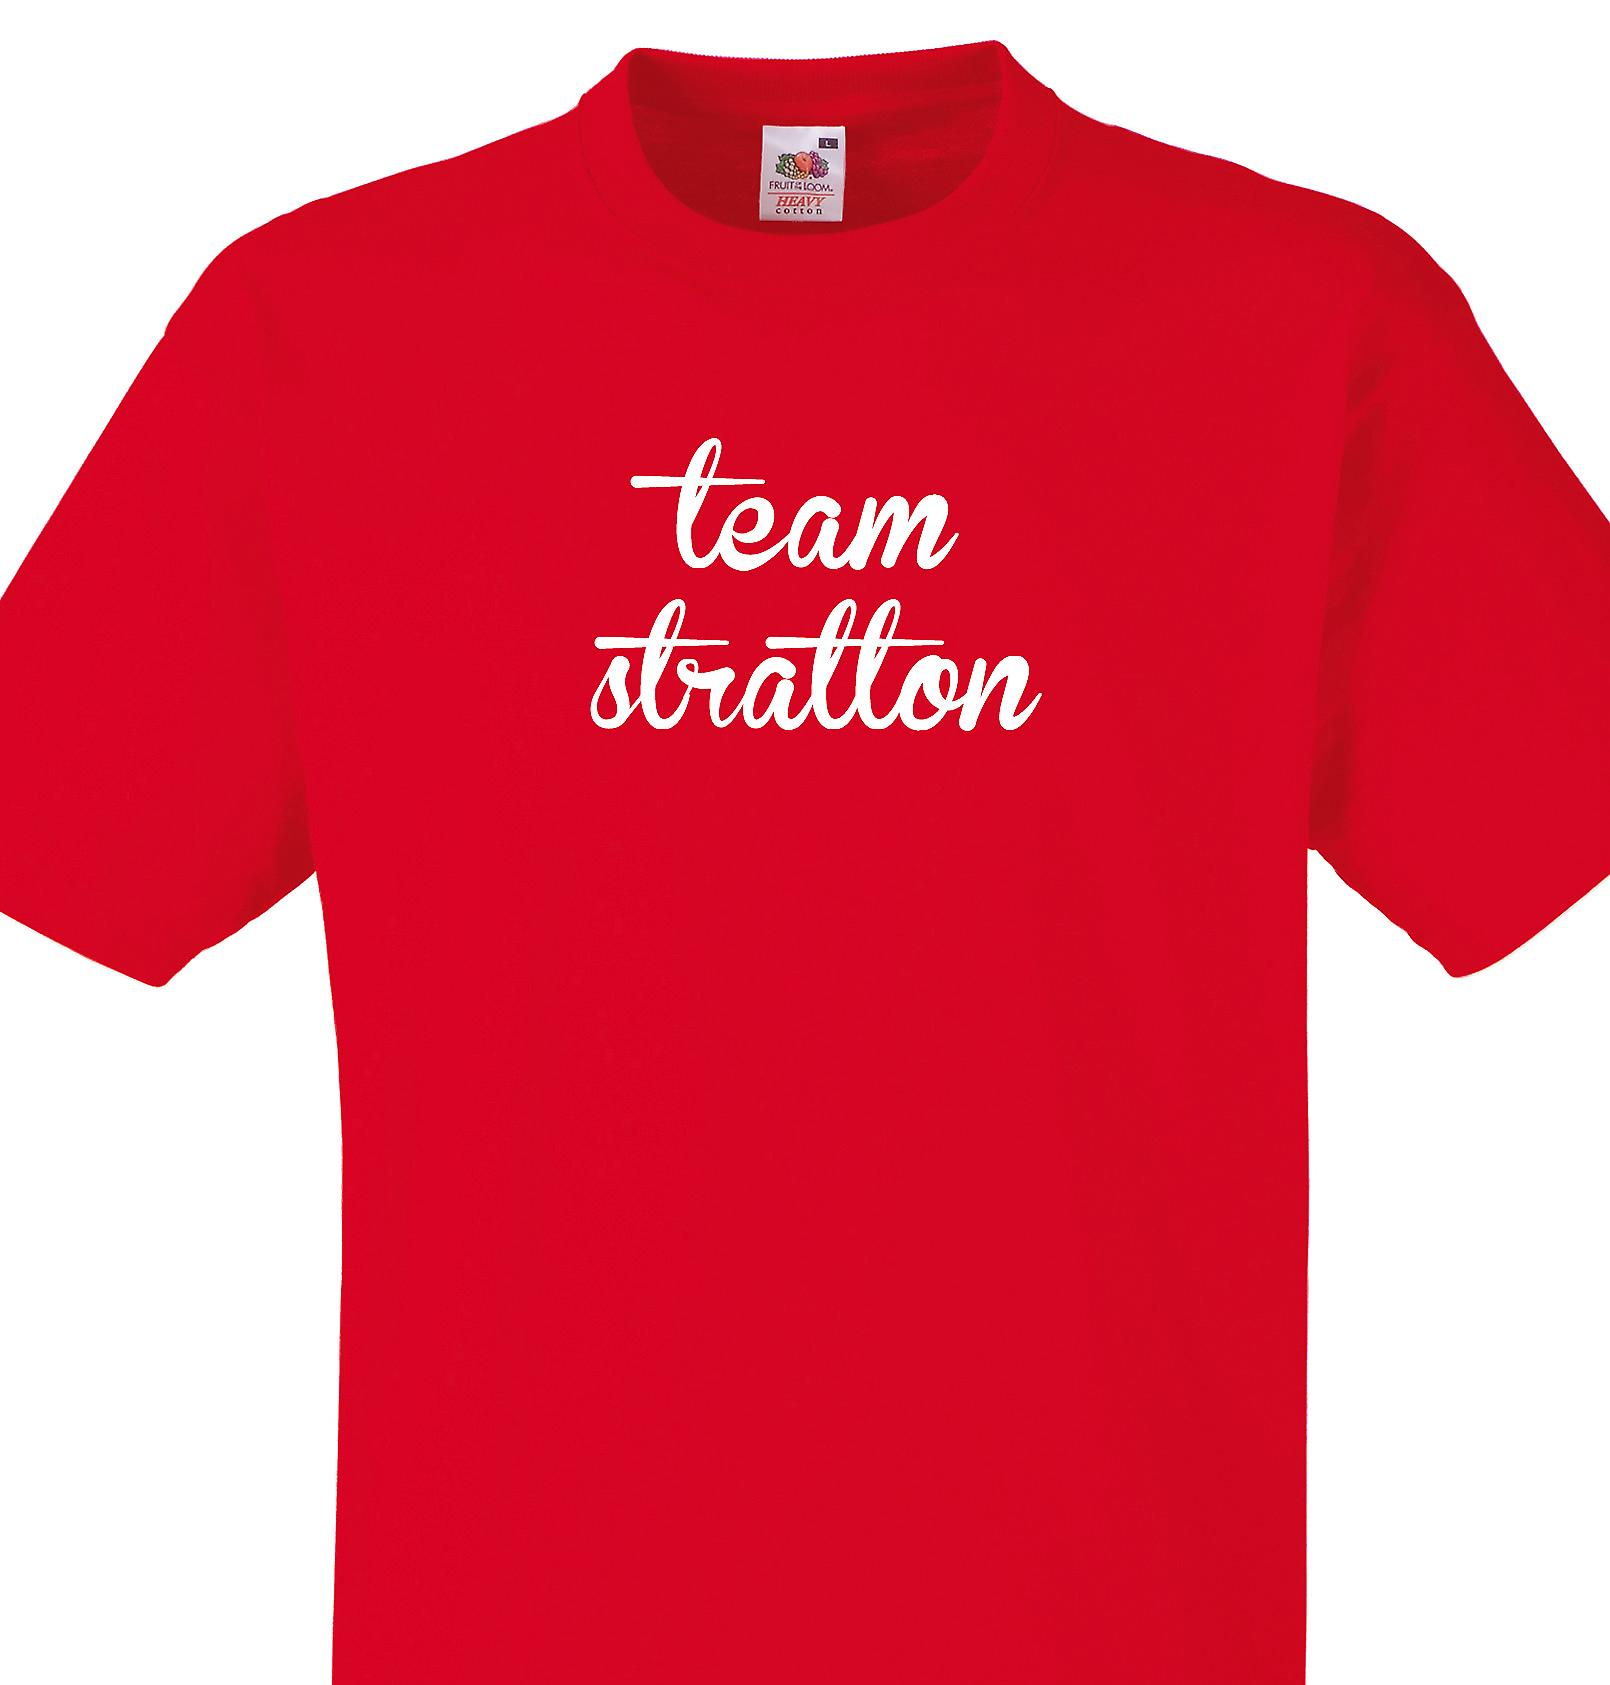 Team Stratton Red T shirt